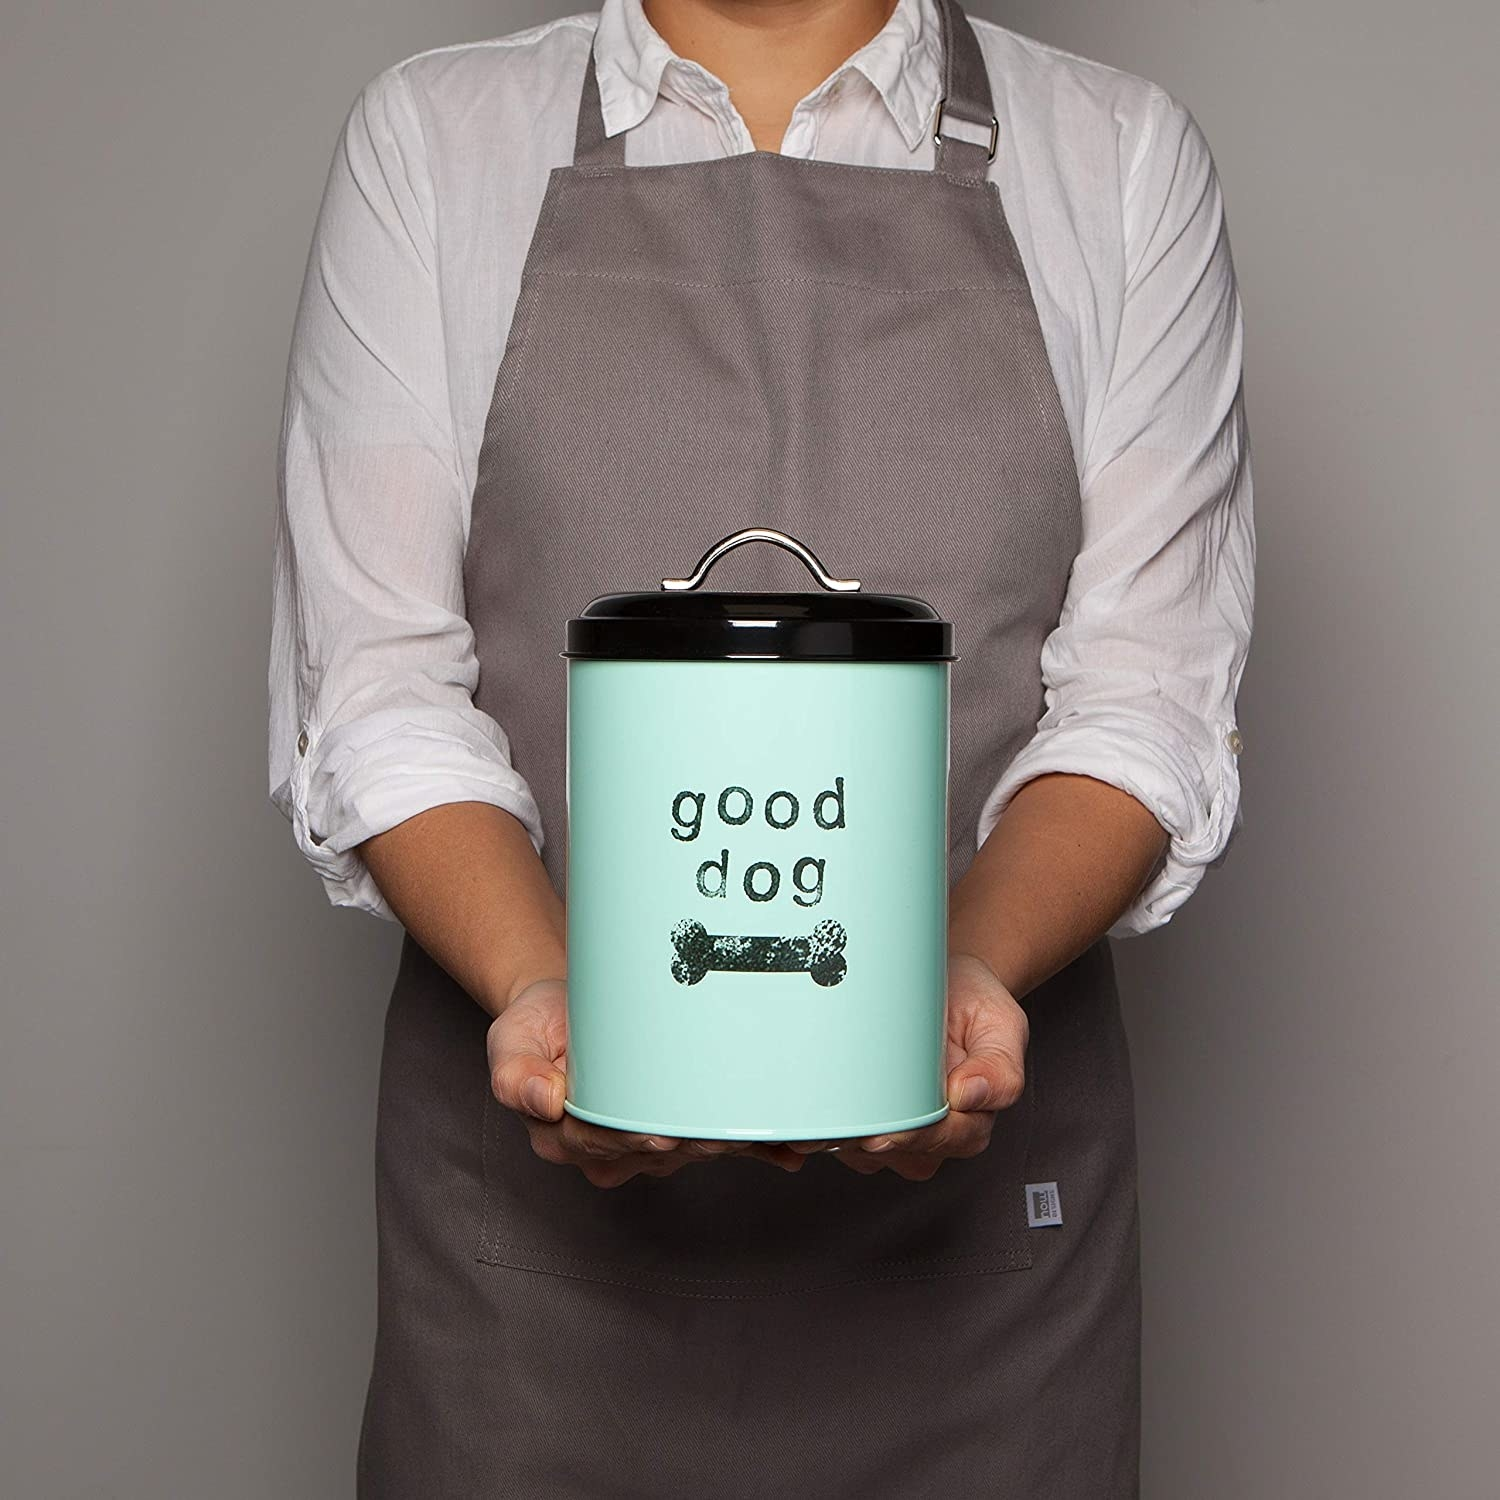 A person holding the treat canister